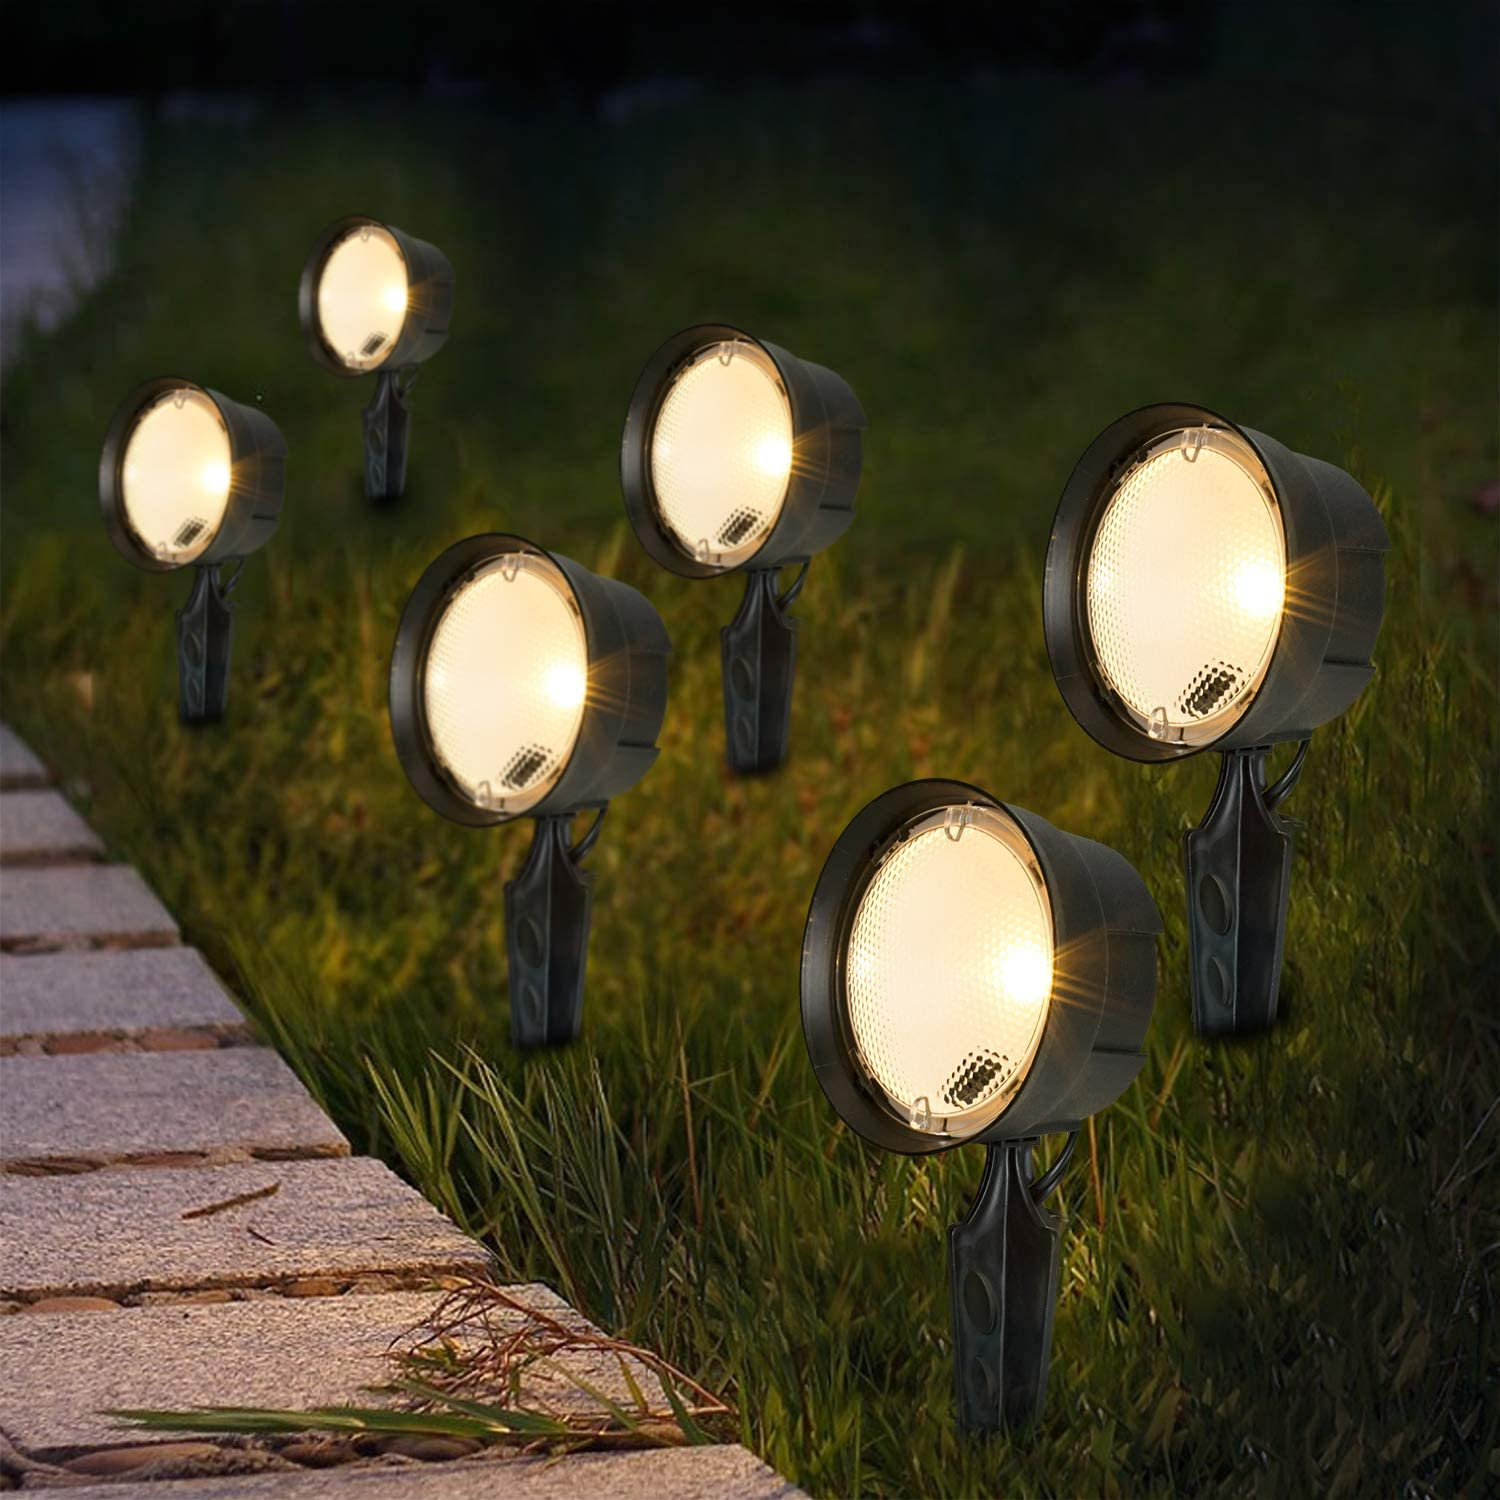 Moon Bay Outdoor Low Voltage Landscape Spotlights unisex LED fo Max 55% OFF Pathway